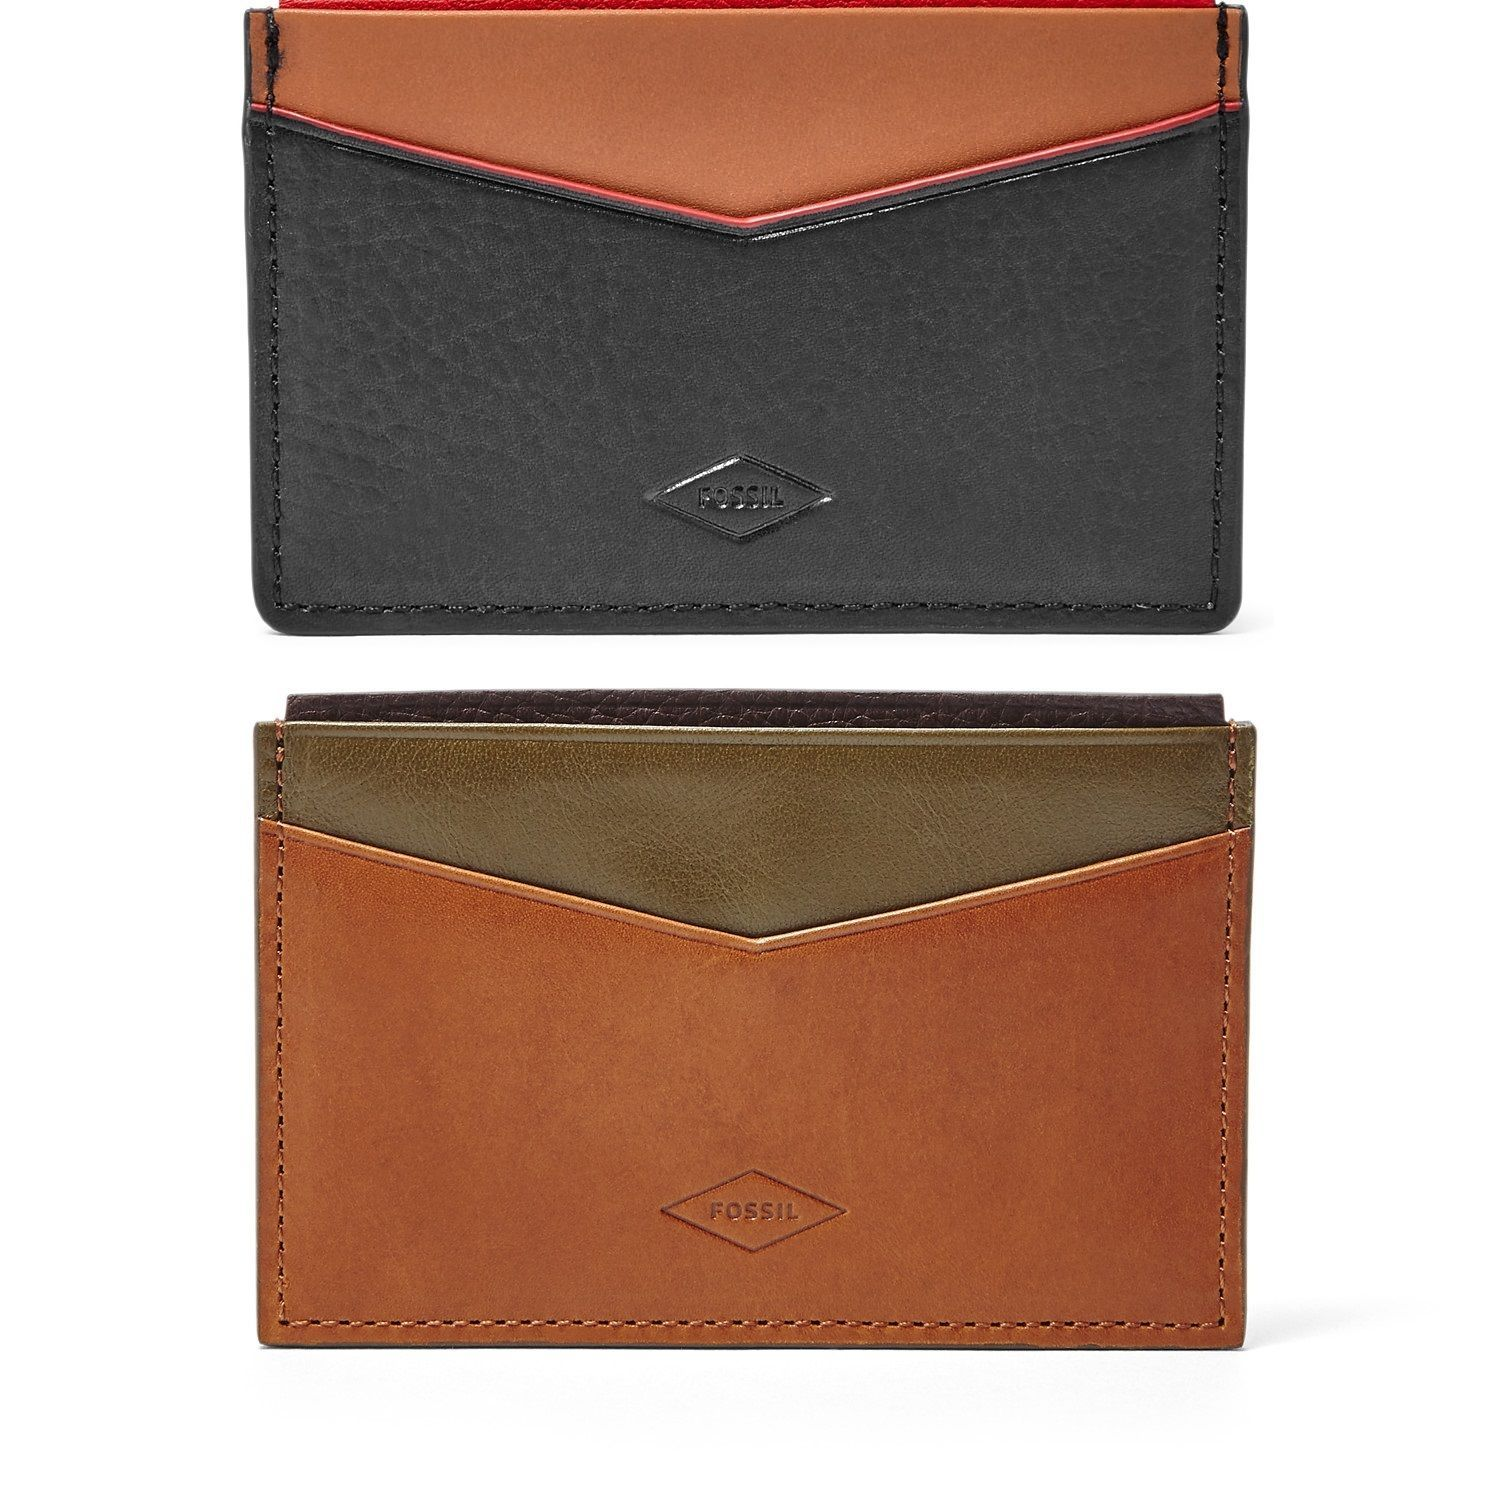 Primary image for Fossil ELLIOT CARD CASE, ML3716P Leather BLACK or SADDLE